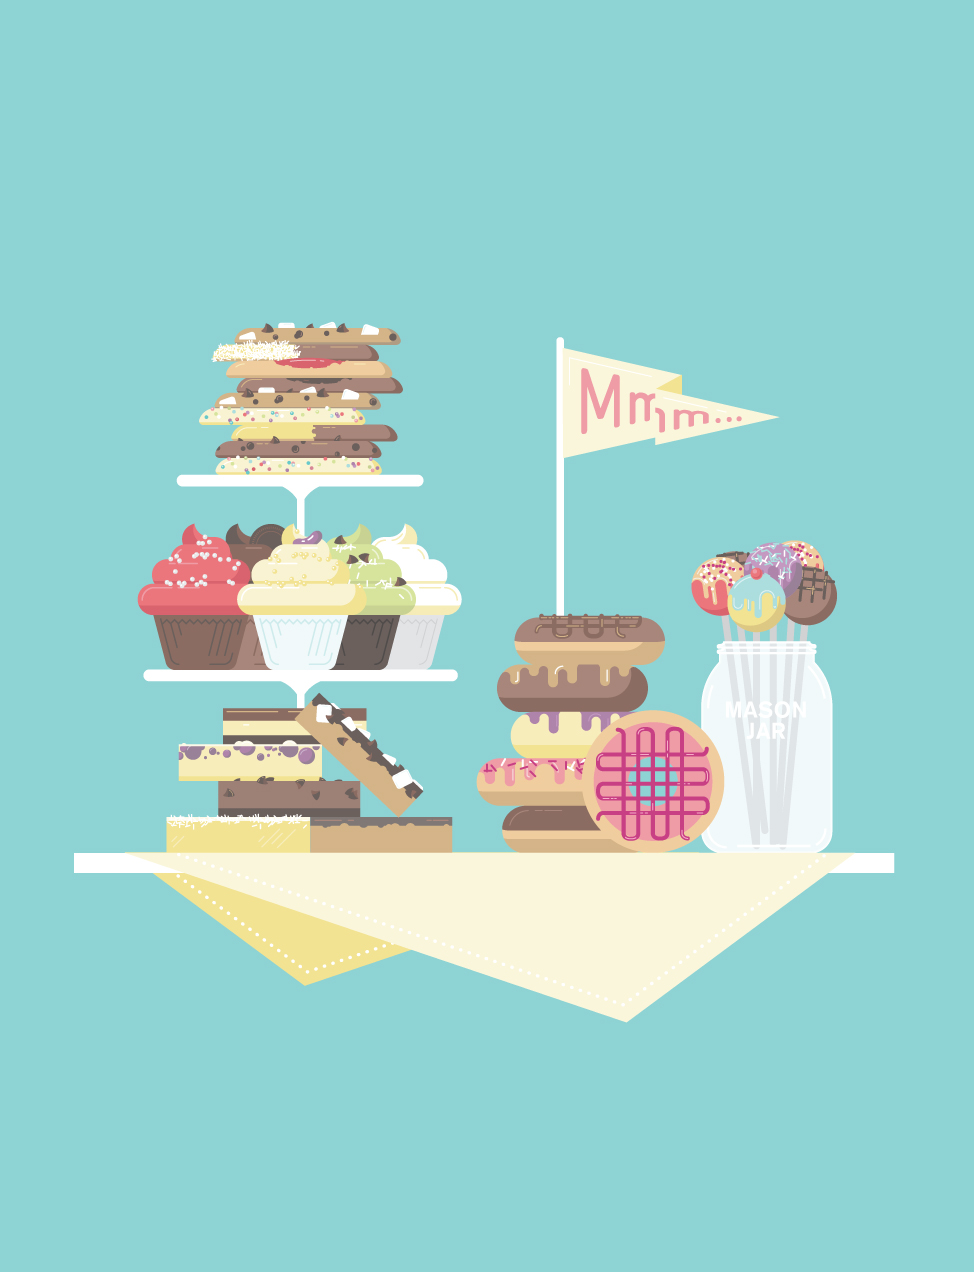 Dessert table illustration — donuts, cupcakes, cake pops, squares and cookies.